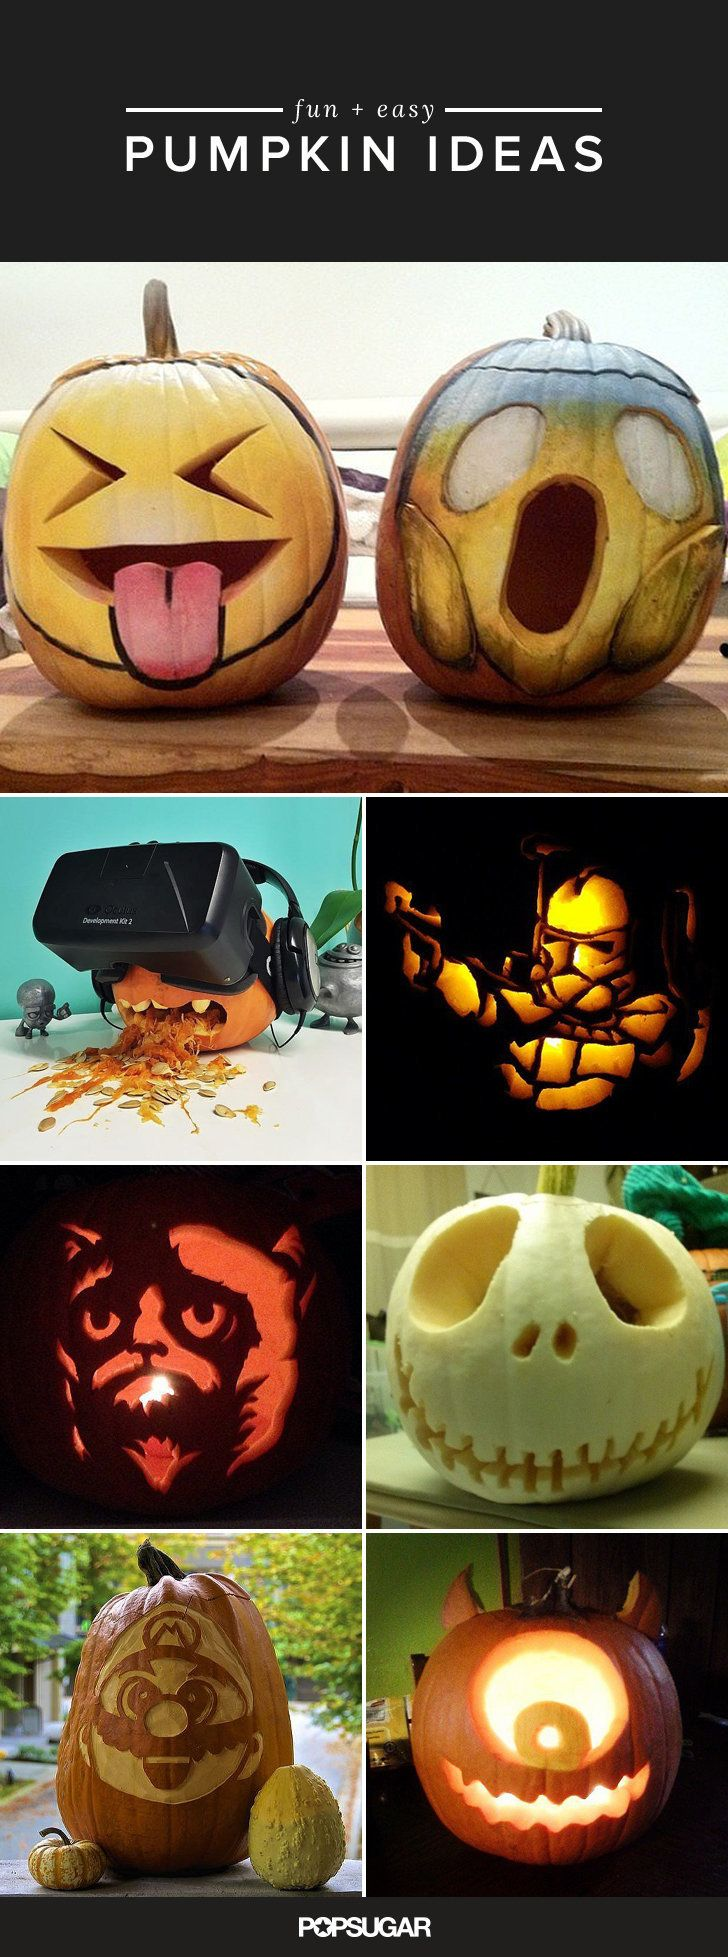 Get inspired by these totally cool pumpkin ideas for Halloween!